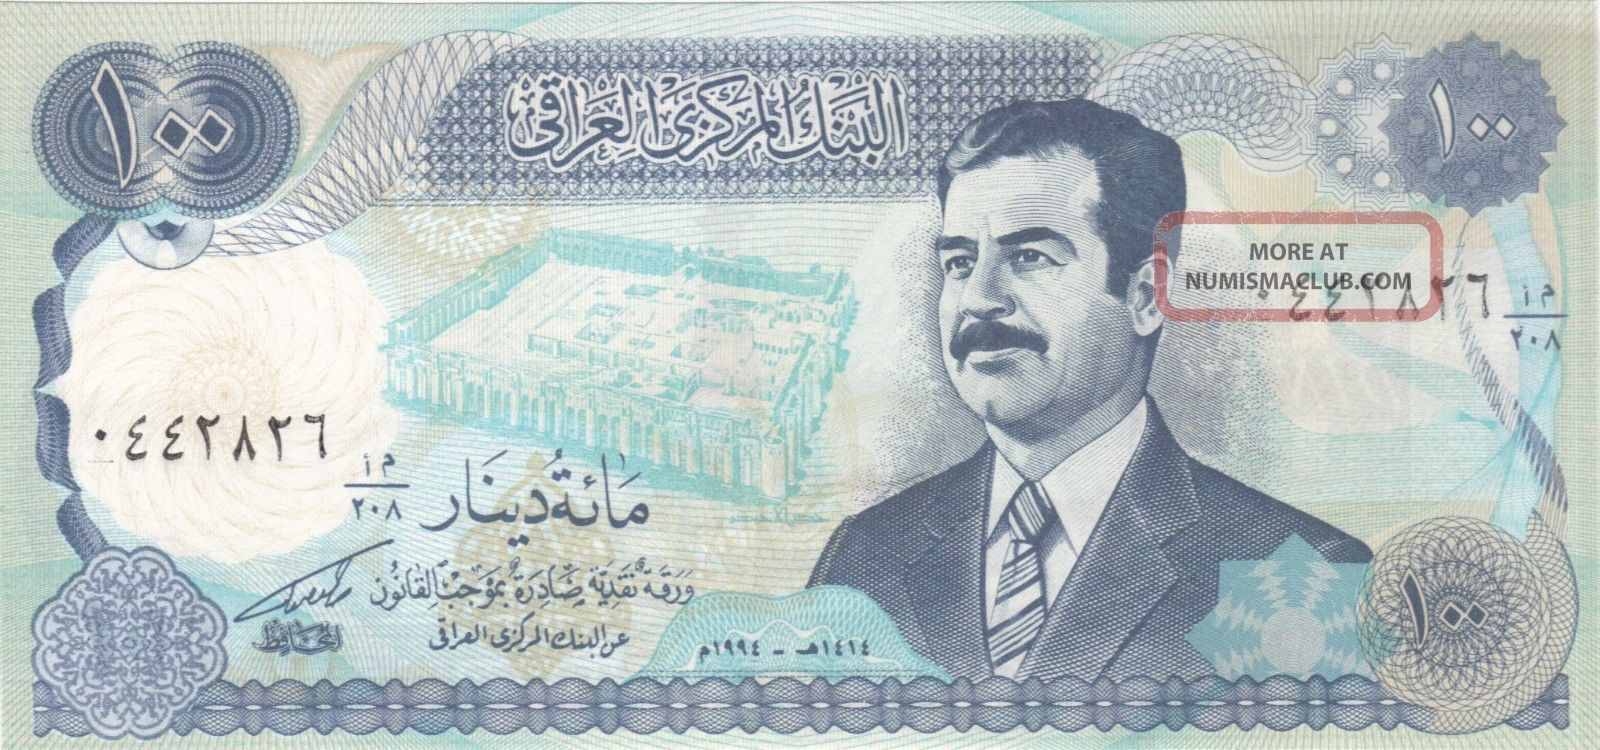 100 Dinars Saddam Hussein Iraq Iraqi Currency Money Note Unc Banknote Bill Cash Middle East photo